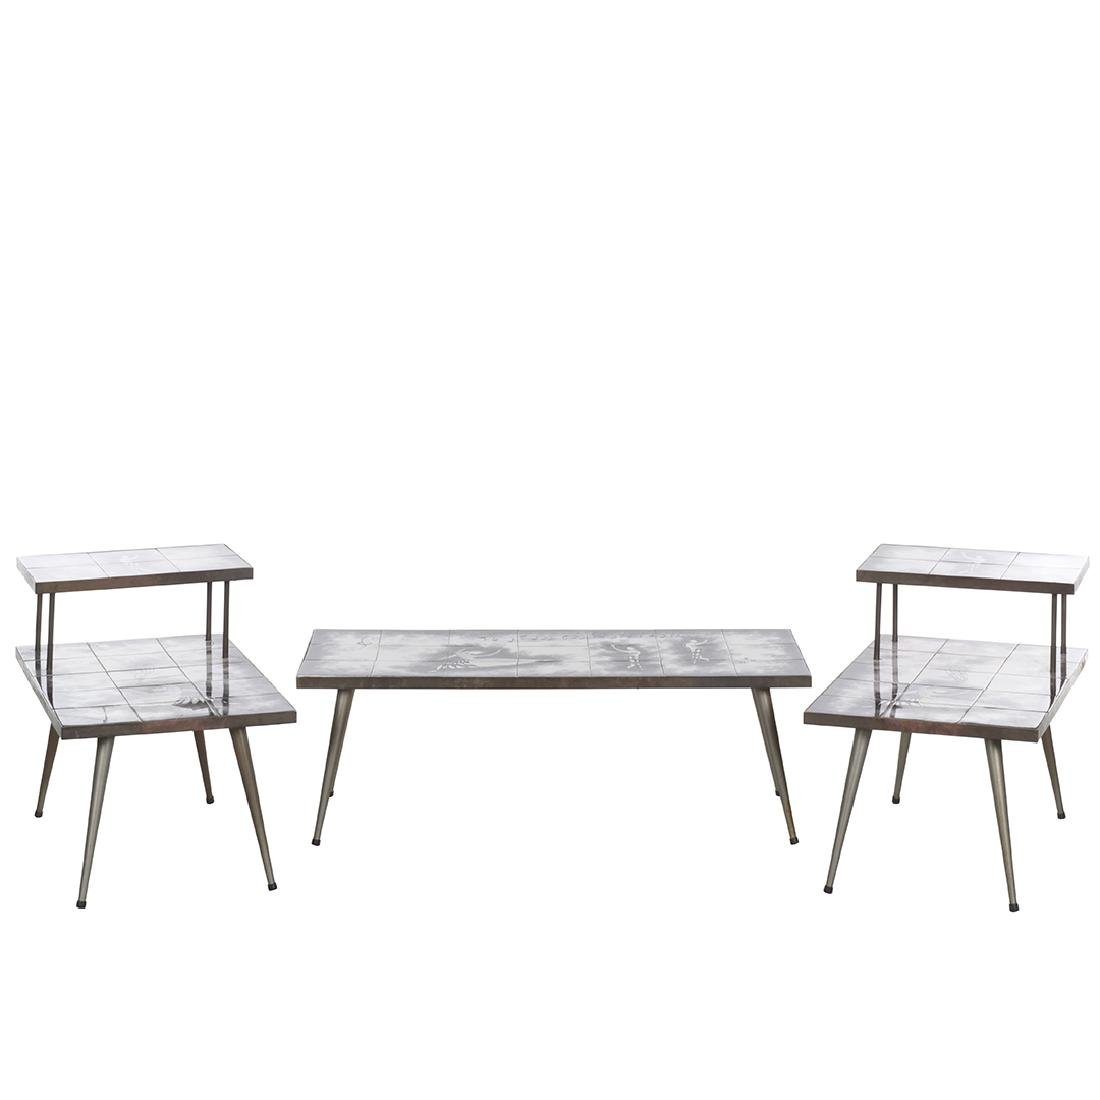 Mid-century Iron and Tile Table Set (3)